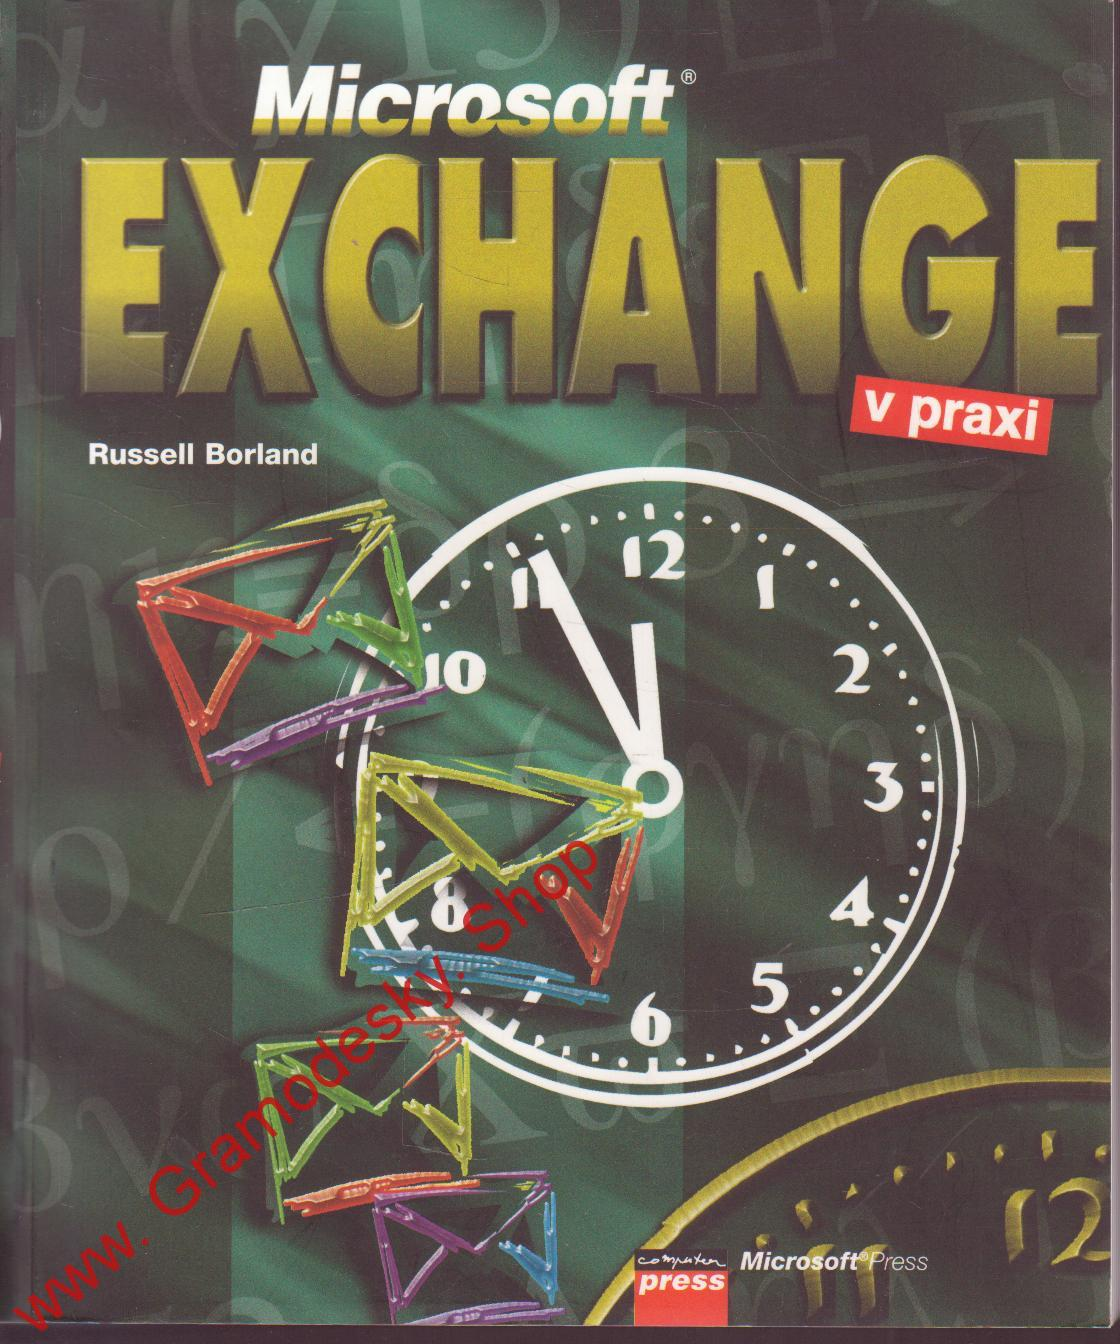 Microsoft Exchange v praxi / Russell Borland, 1997